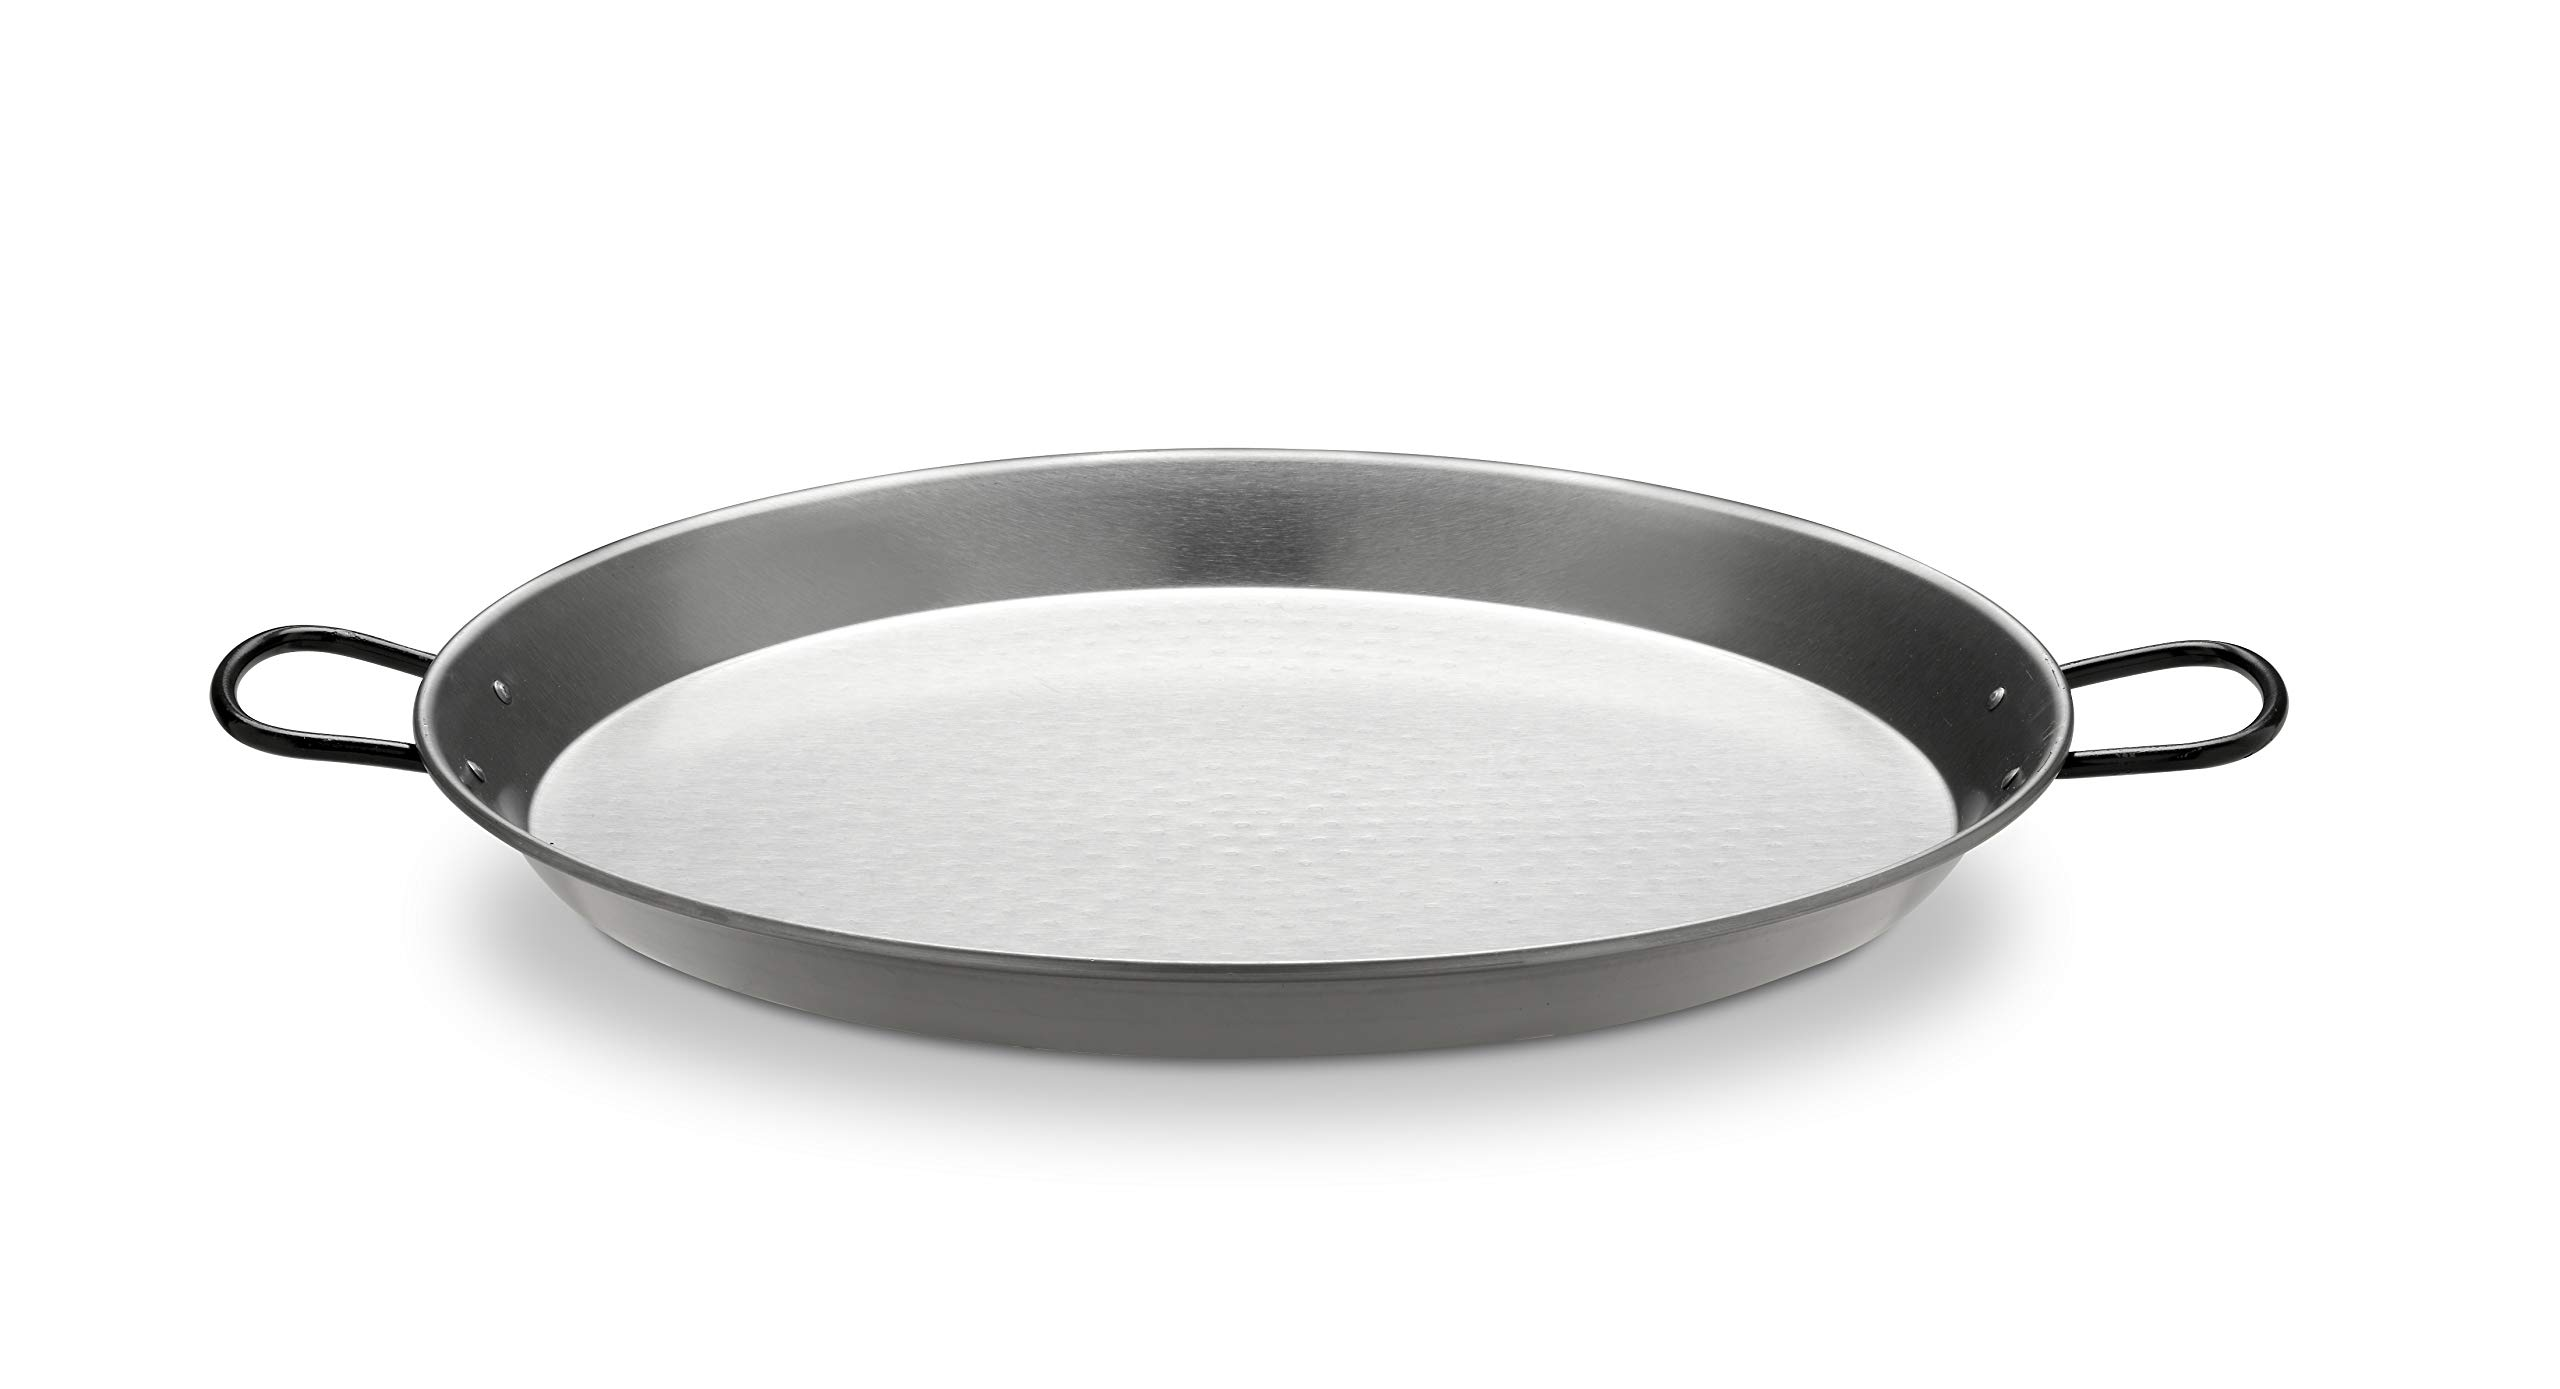 Polished Steel Valencian paella pan 26Inch / 65cm / 25 Servings by Vaello La Valenciana